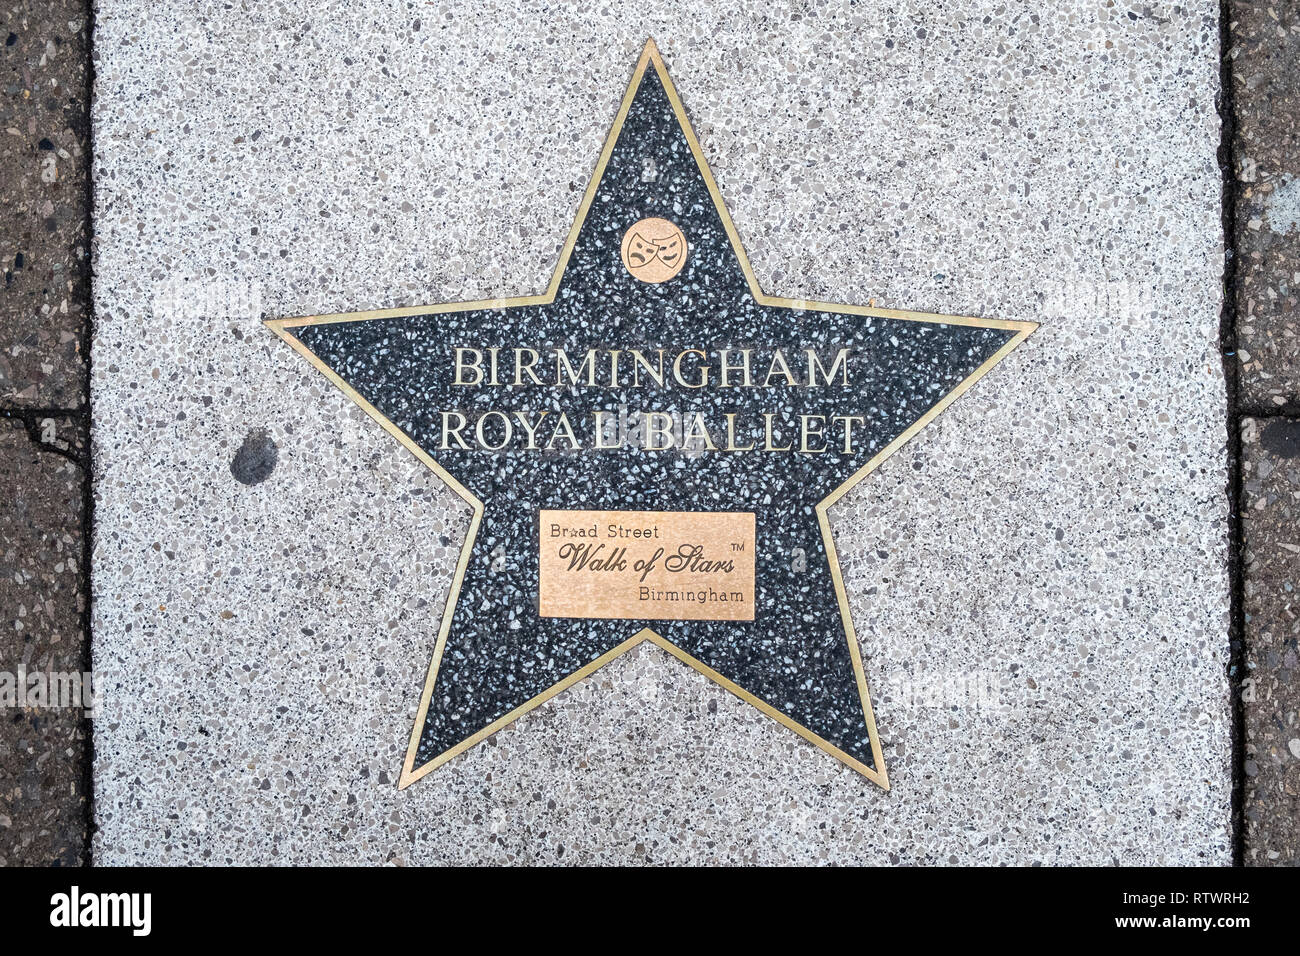 Star for Birmingham Royal Ballet on the Walk of Stars, Broad Street, Brimingham, England, GB, UK. The star was added to the walk in September 2010. - Stock Image